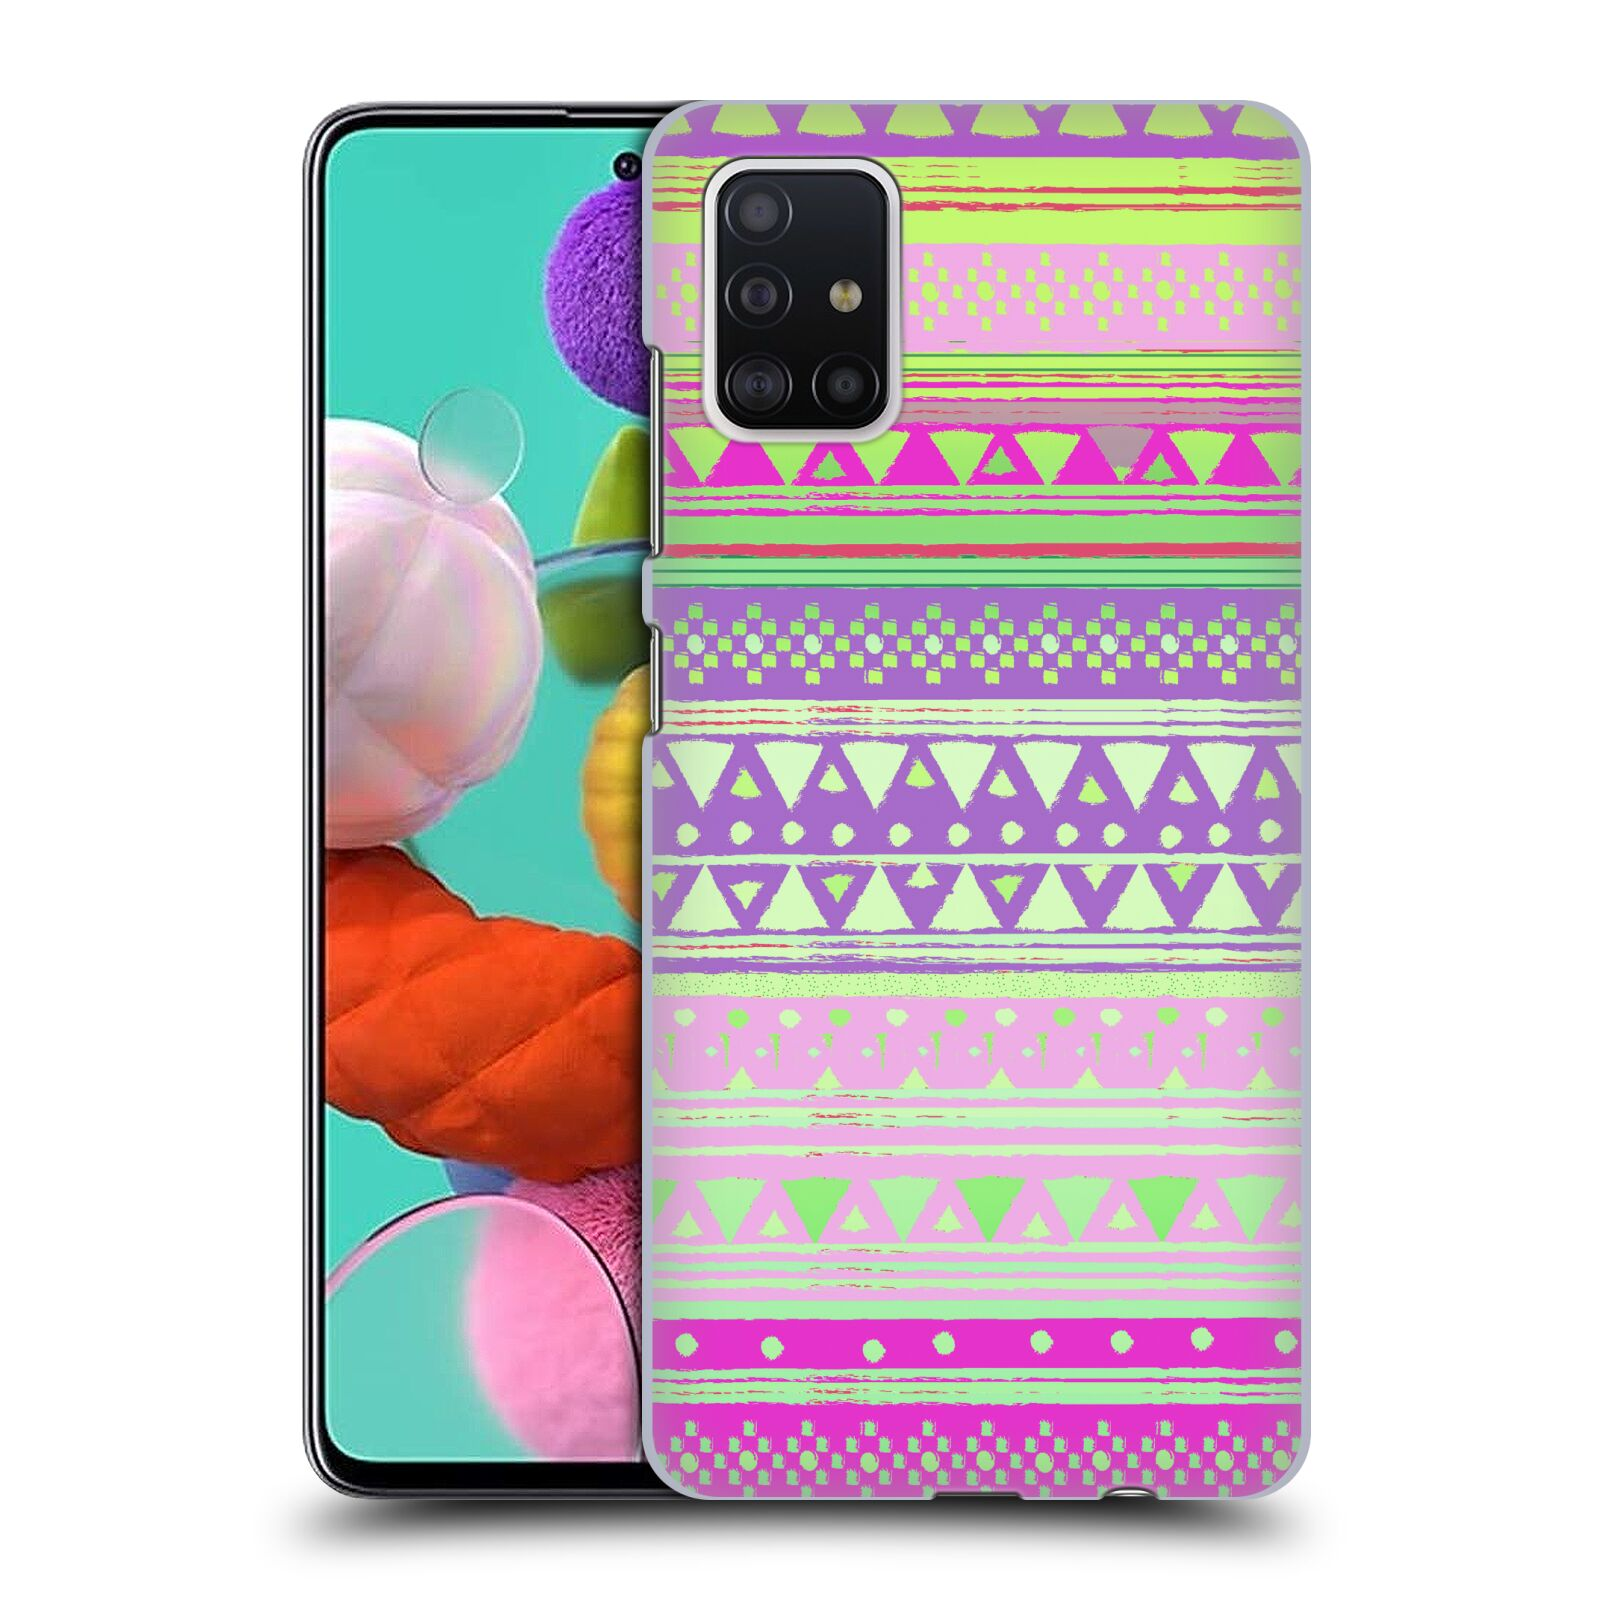 Official Nika Martinez Tribal Prints Fresh Native Bandana Case for Samsung Galaxy A51 (2019)